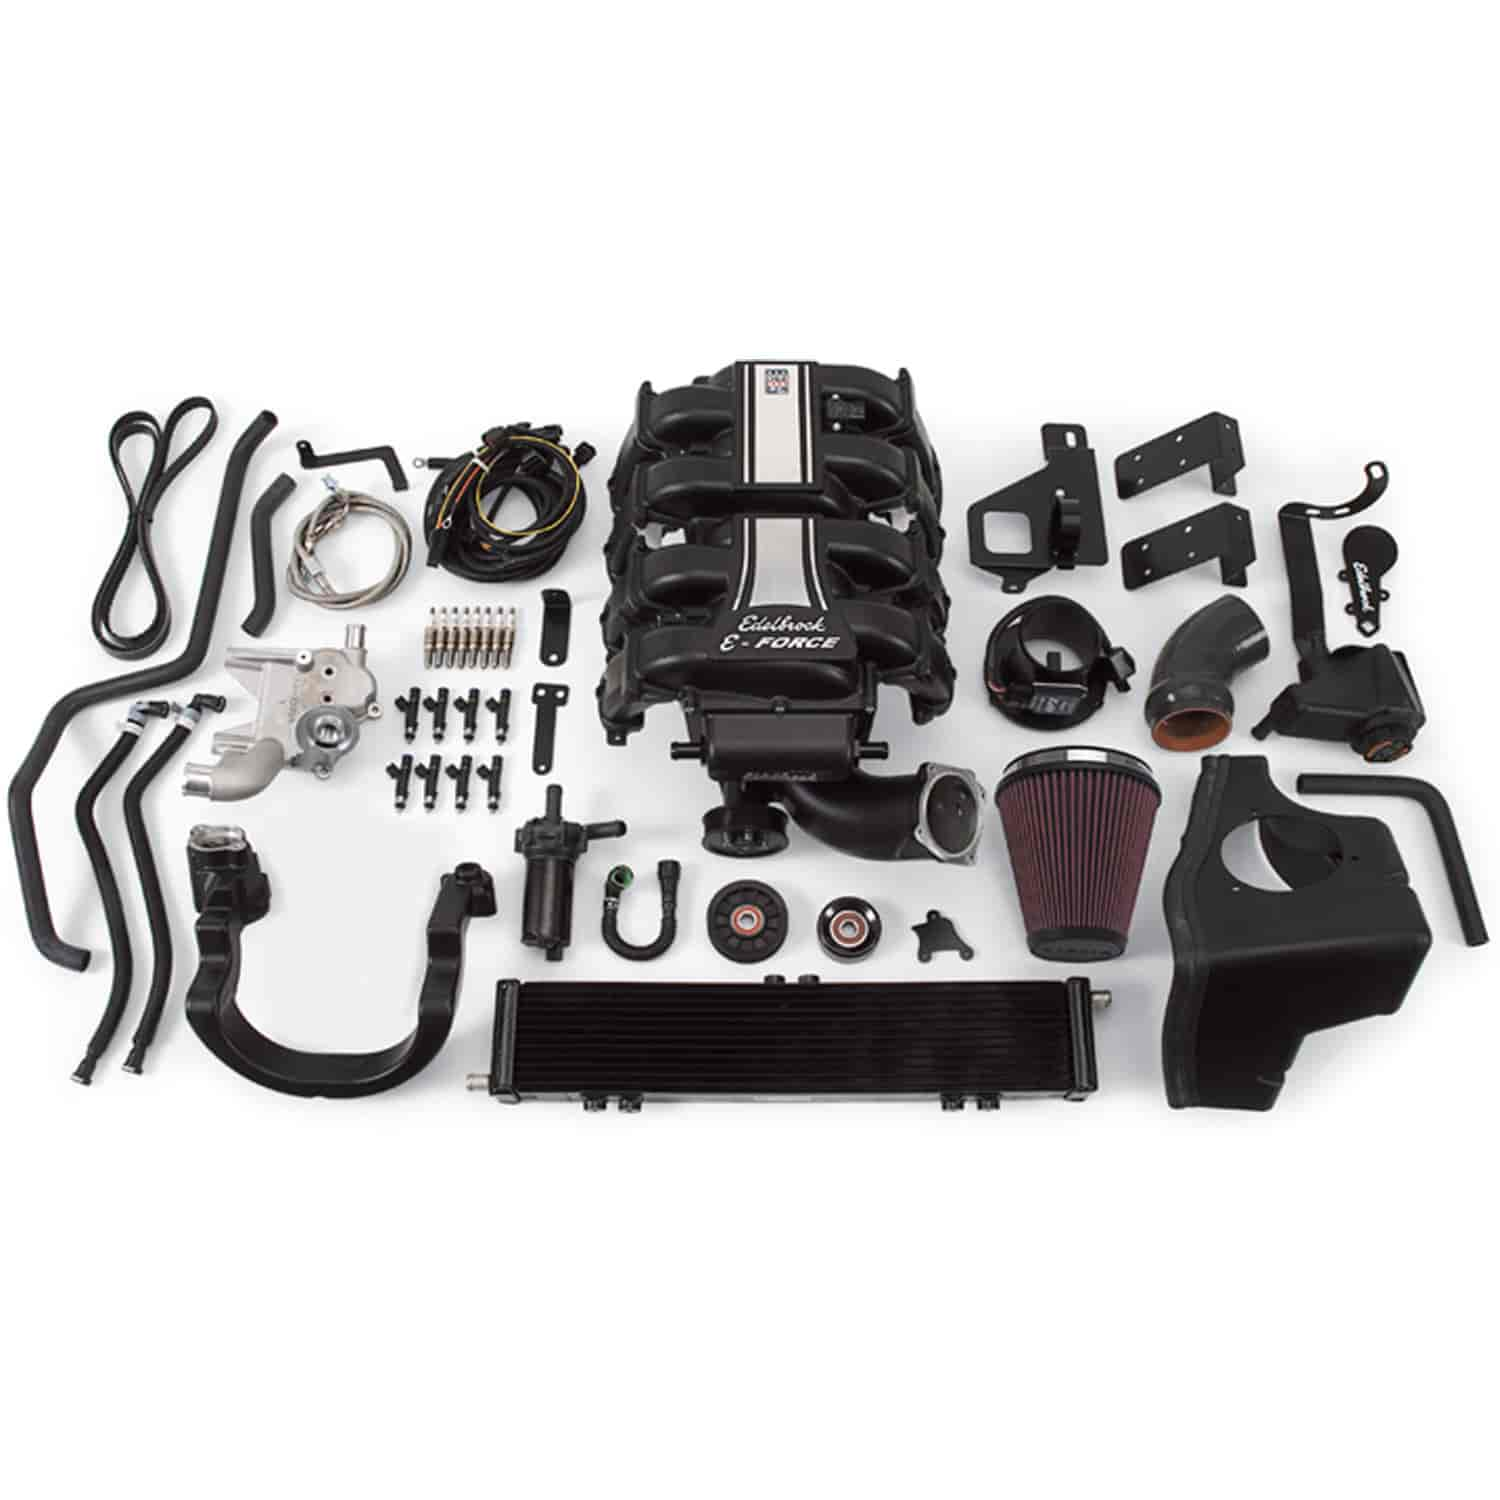 Edelbrock 15810 - Edelbrock E-Force Supercharger Kits for Ford F-150